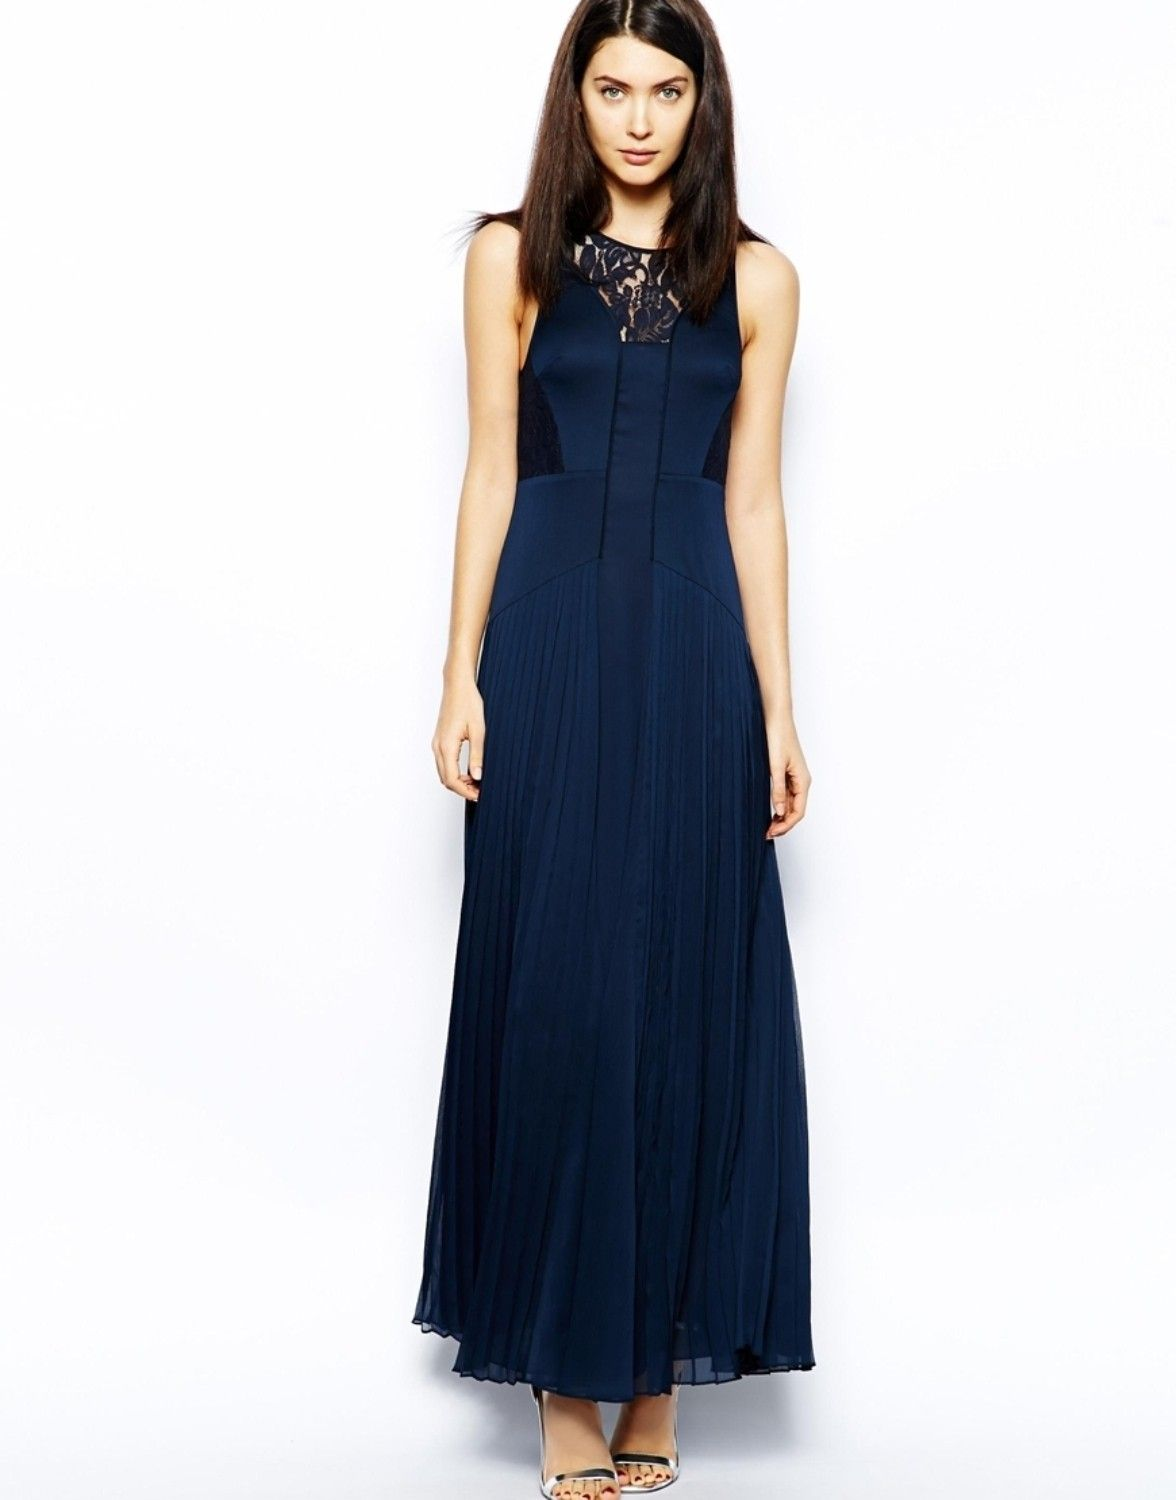 Innovative  Dress For Women  Women39s BlueMulti Maxi Dresses Online In India